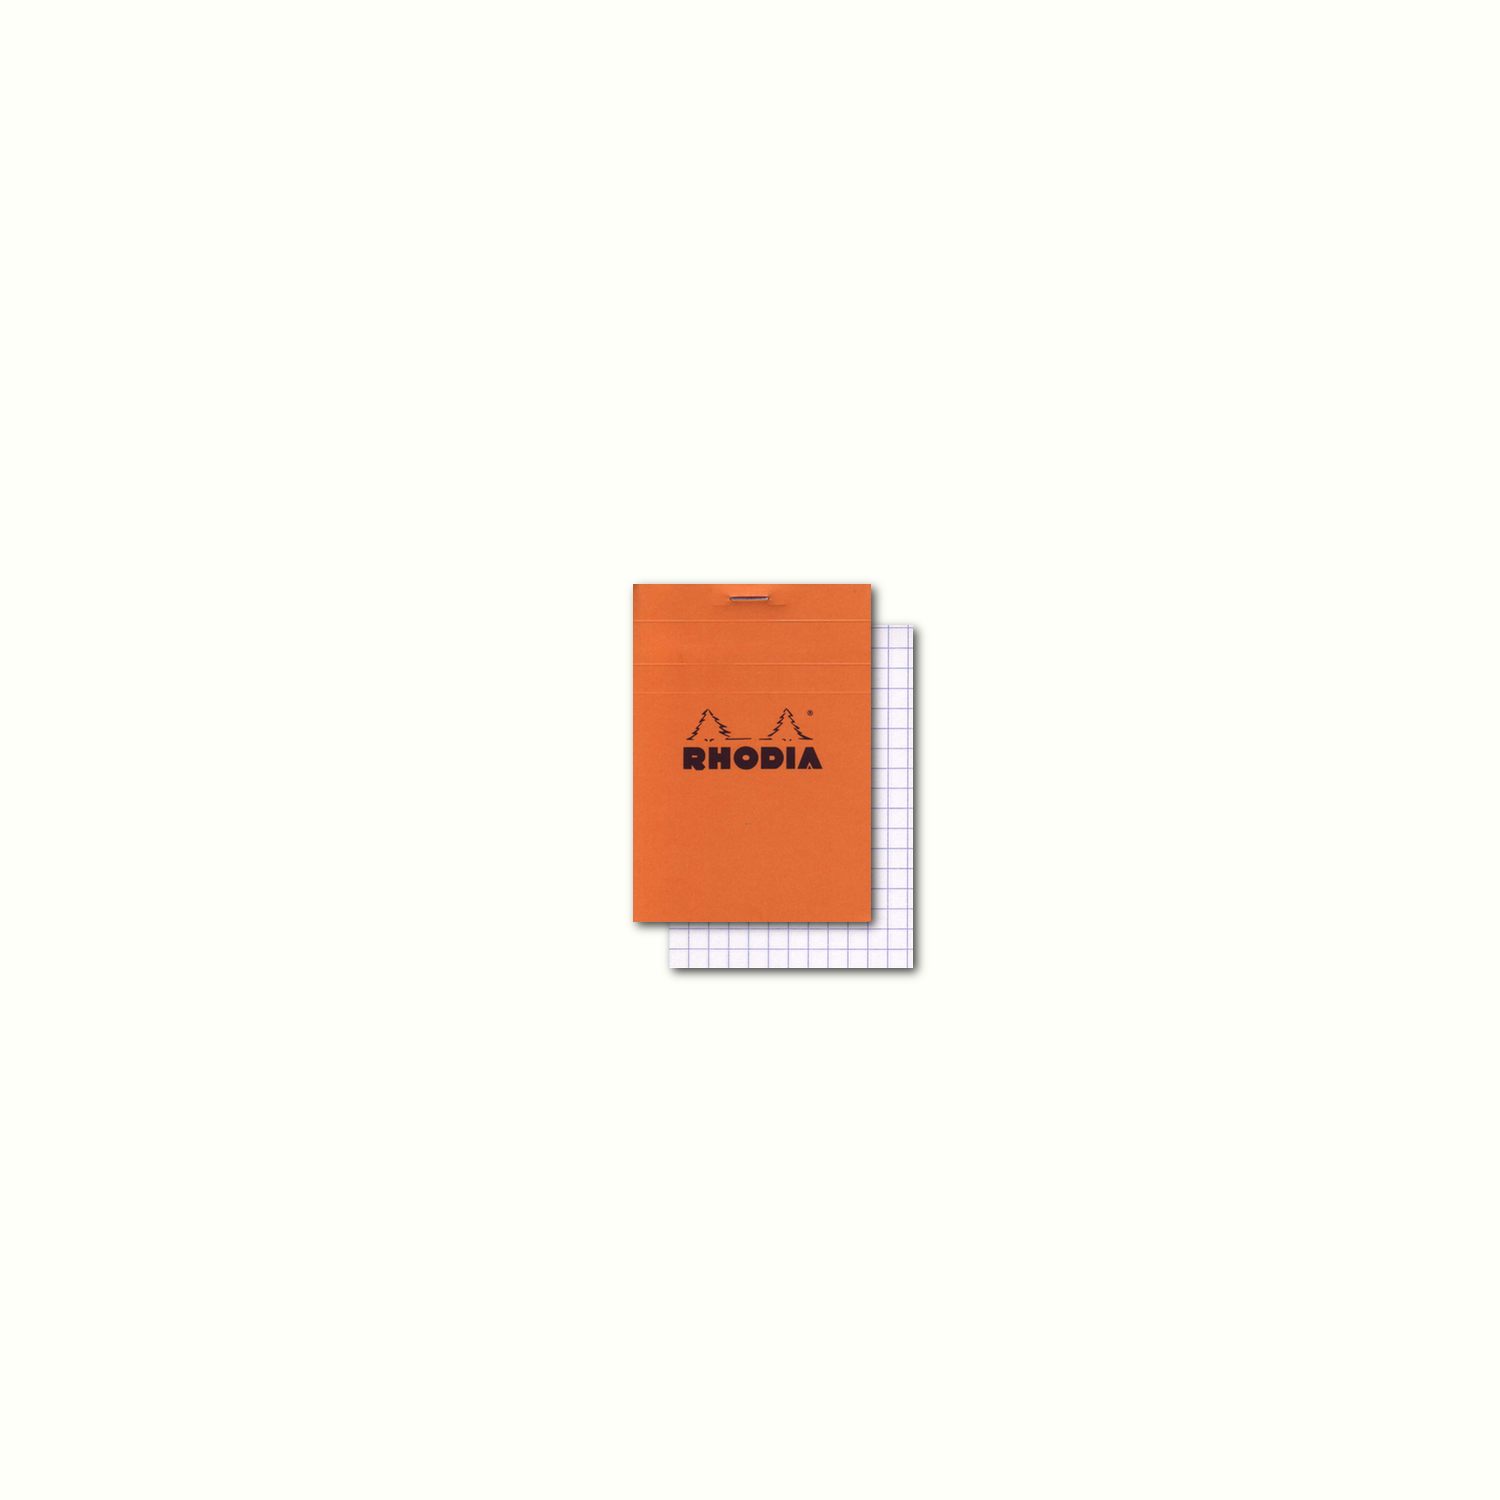 Rhodia Classic Orange Notepad 3.3 X 4.75 Grid